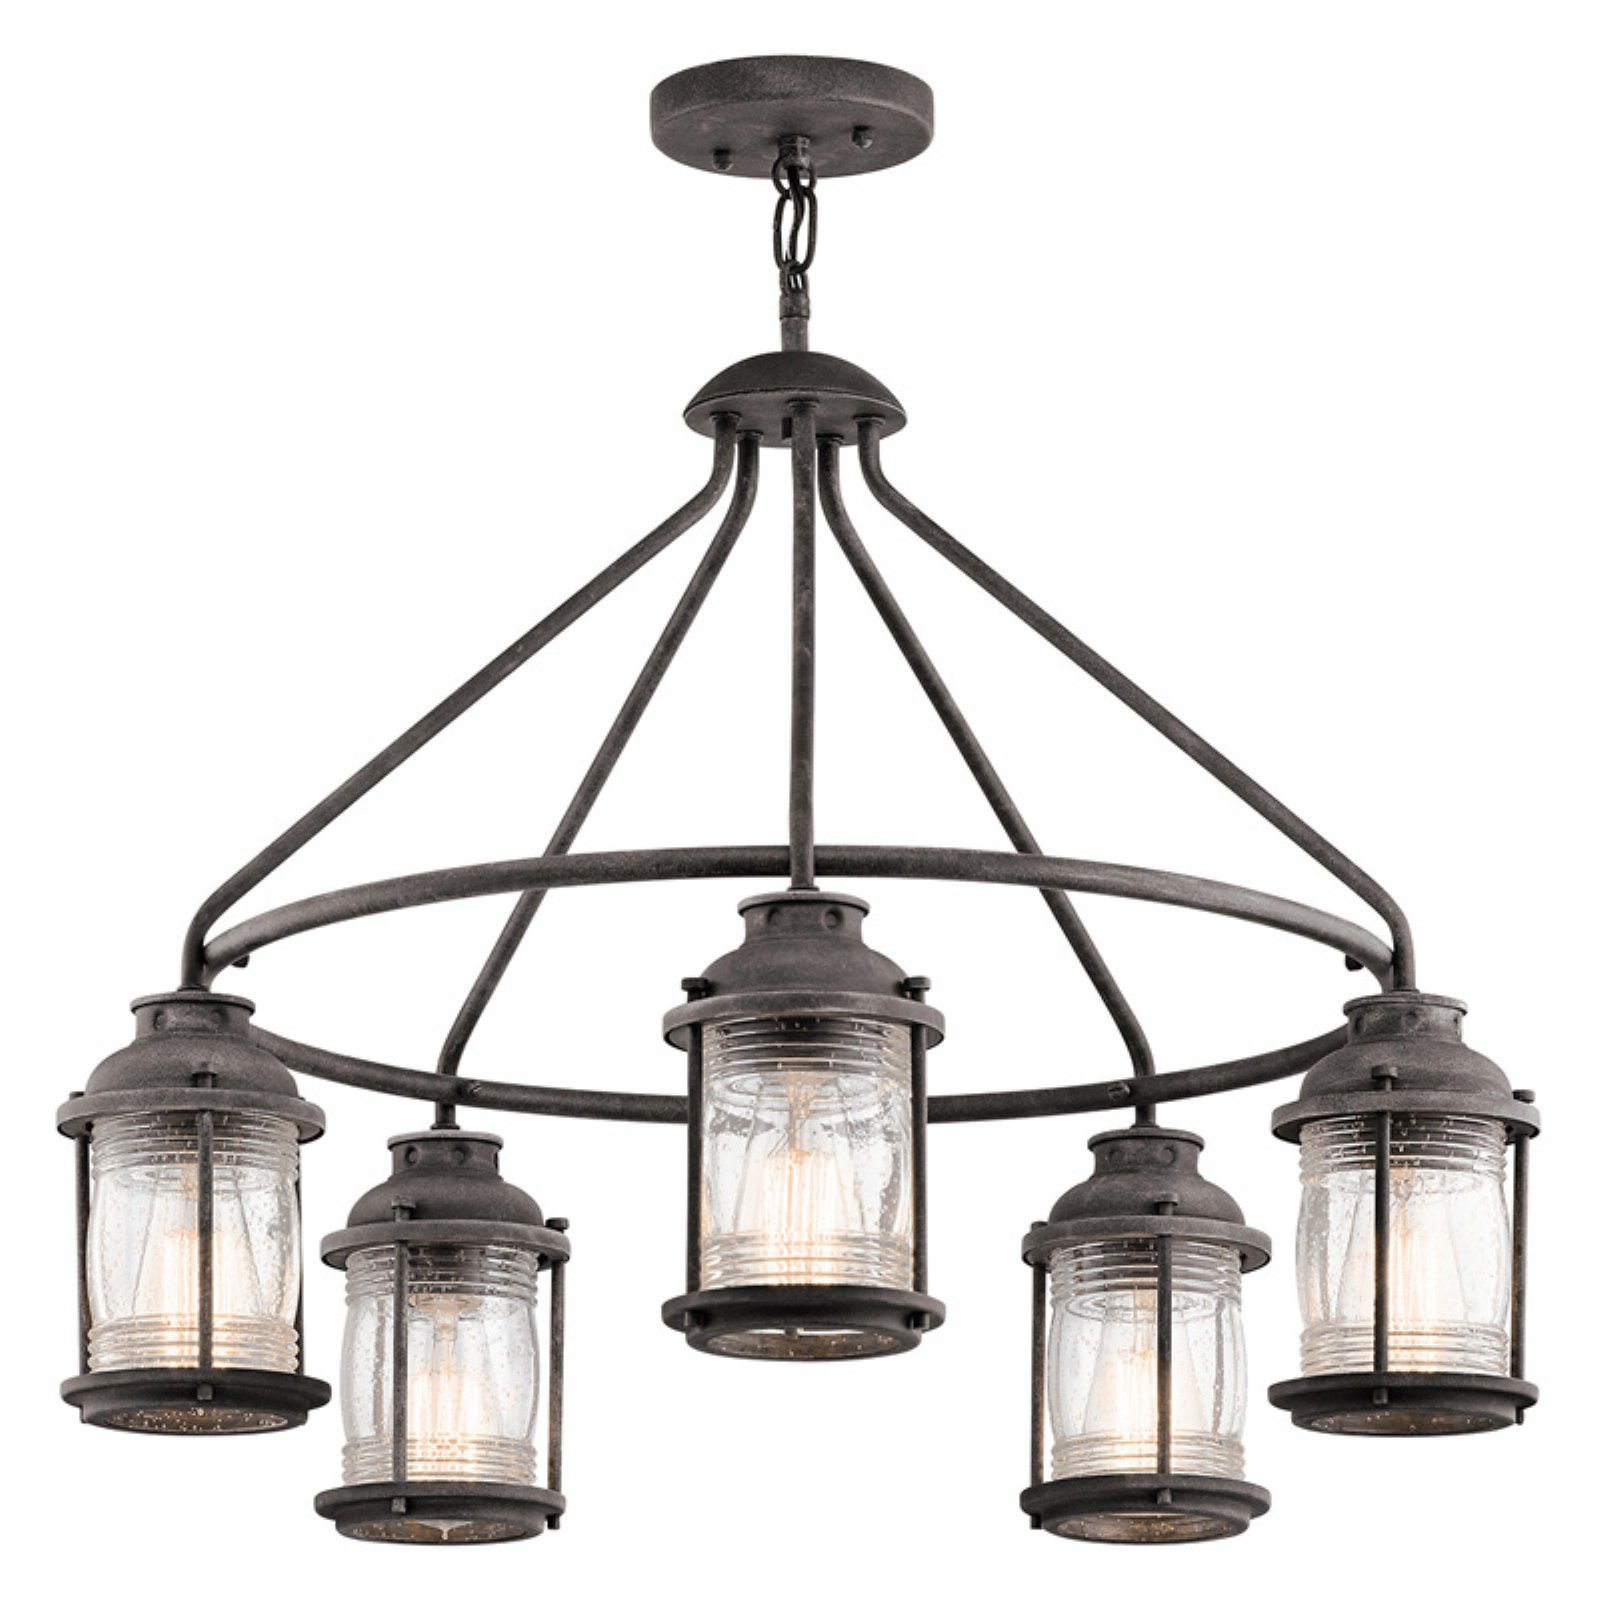 Kichler Ashland Bay 49667WZC Outdoor Chandelier